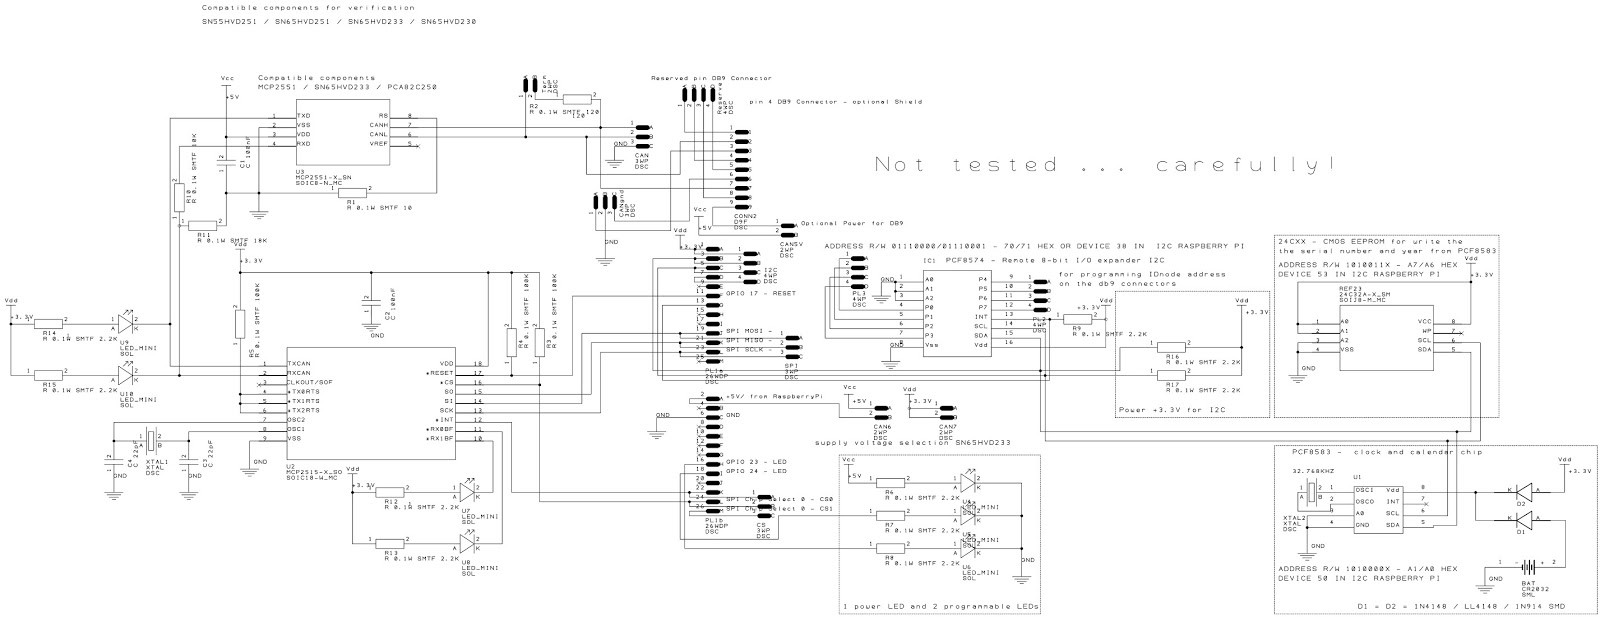 Schematic design of PCB board with all components - version 0.1a =>  modification Revised 0.1